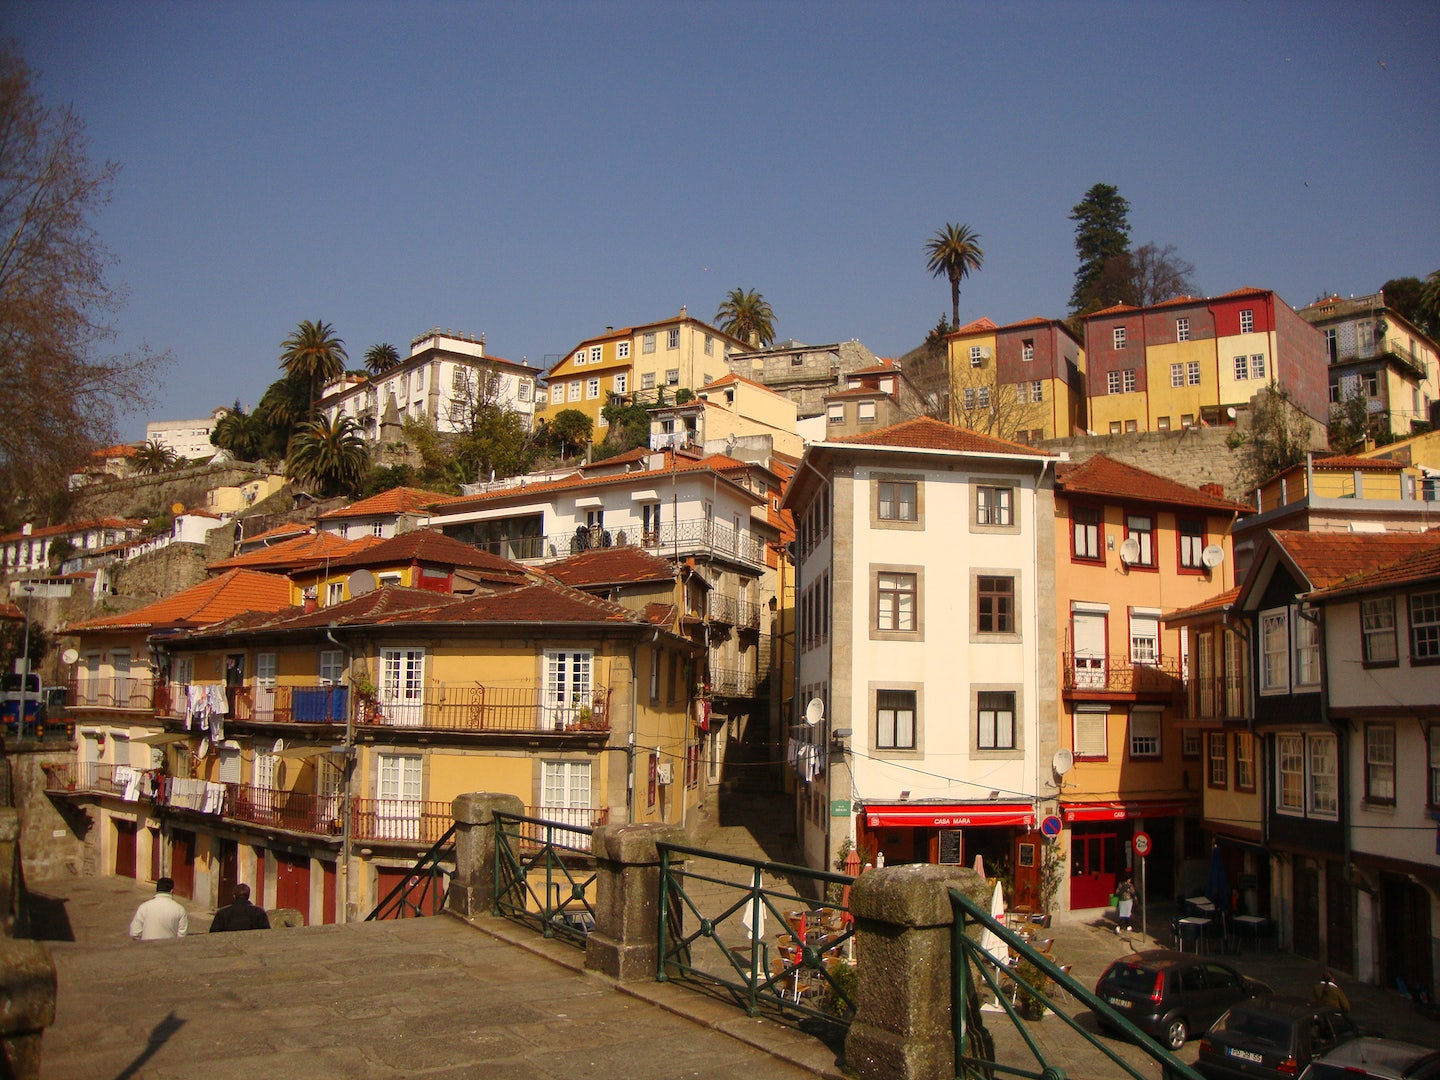 Colourful house in the Miragaia neighbourhoud in Porto